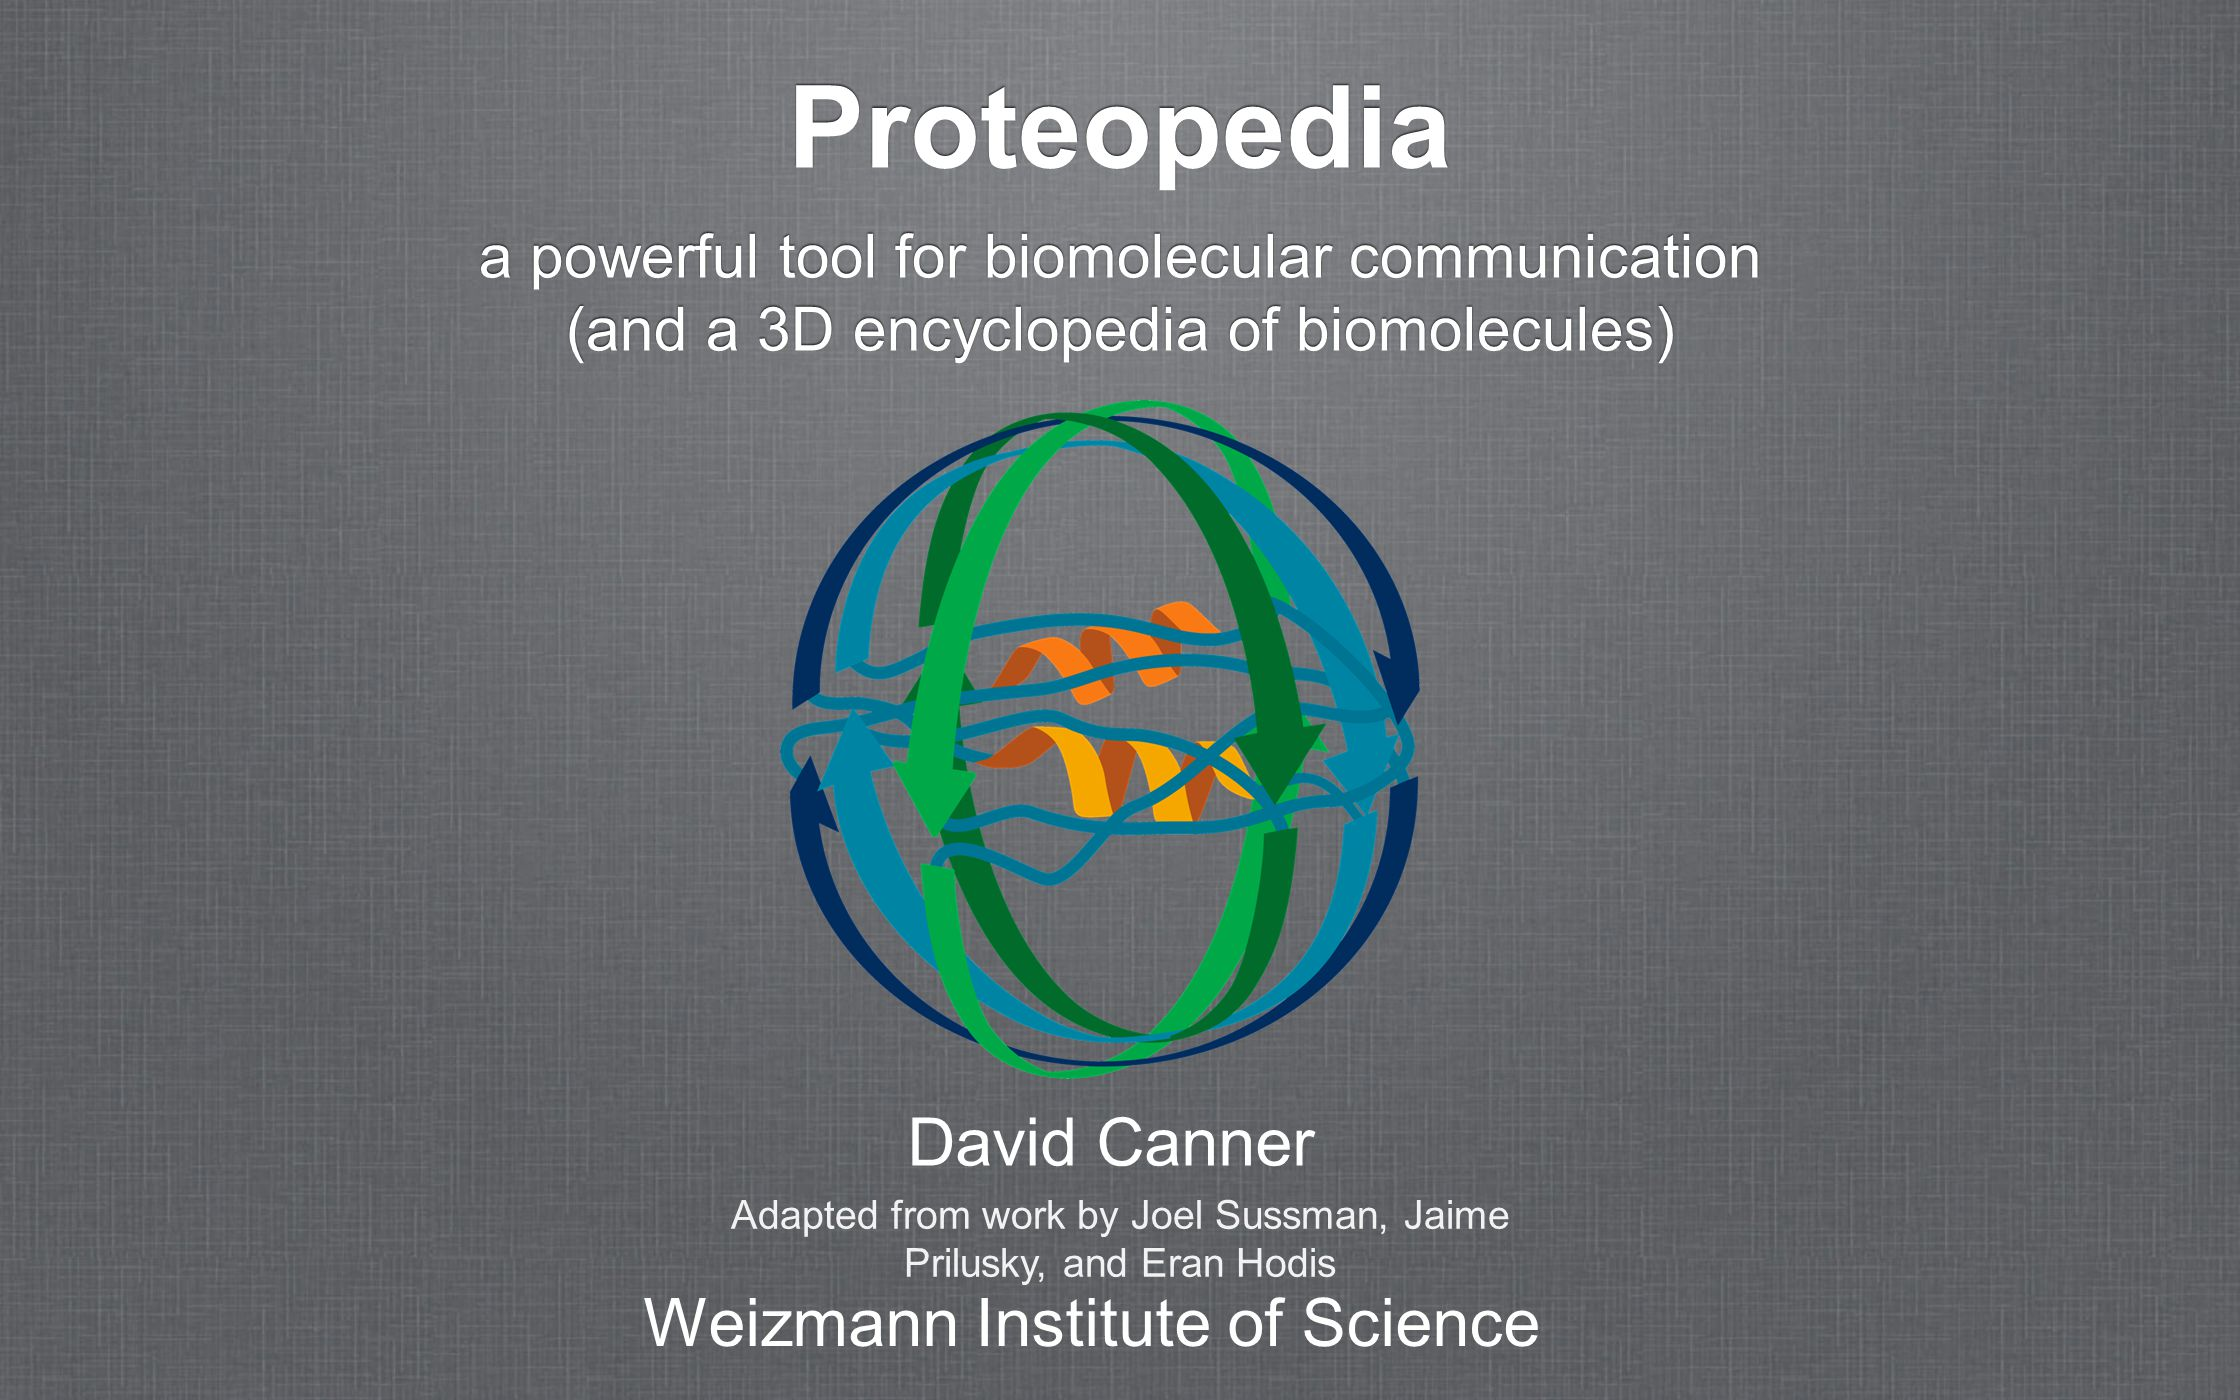 Proteopedia a powerful tool for biomolecular communication (and a 3D encyclopedia of biomolecules) a powerful tool for biomolecular communication (and